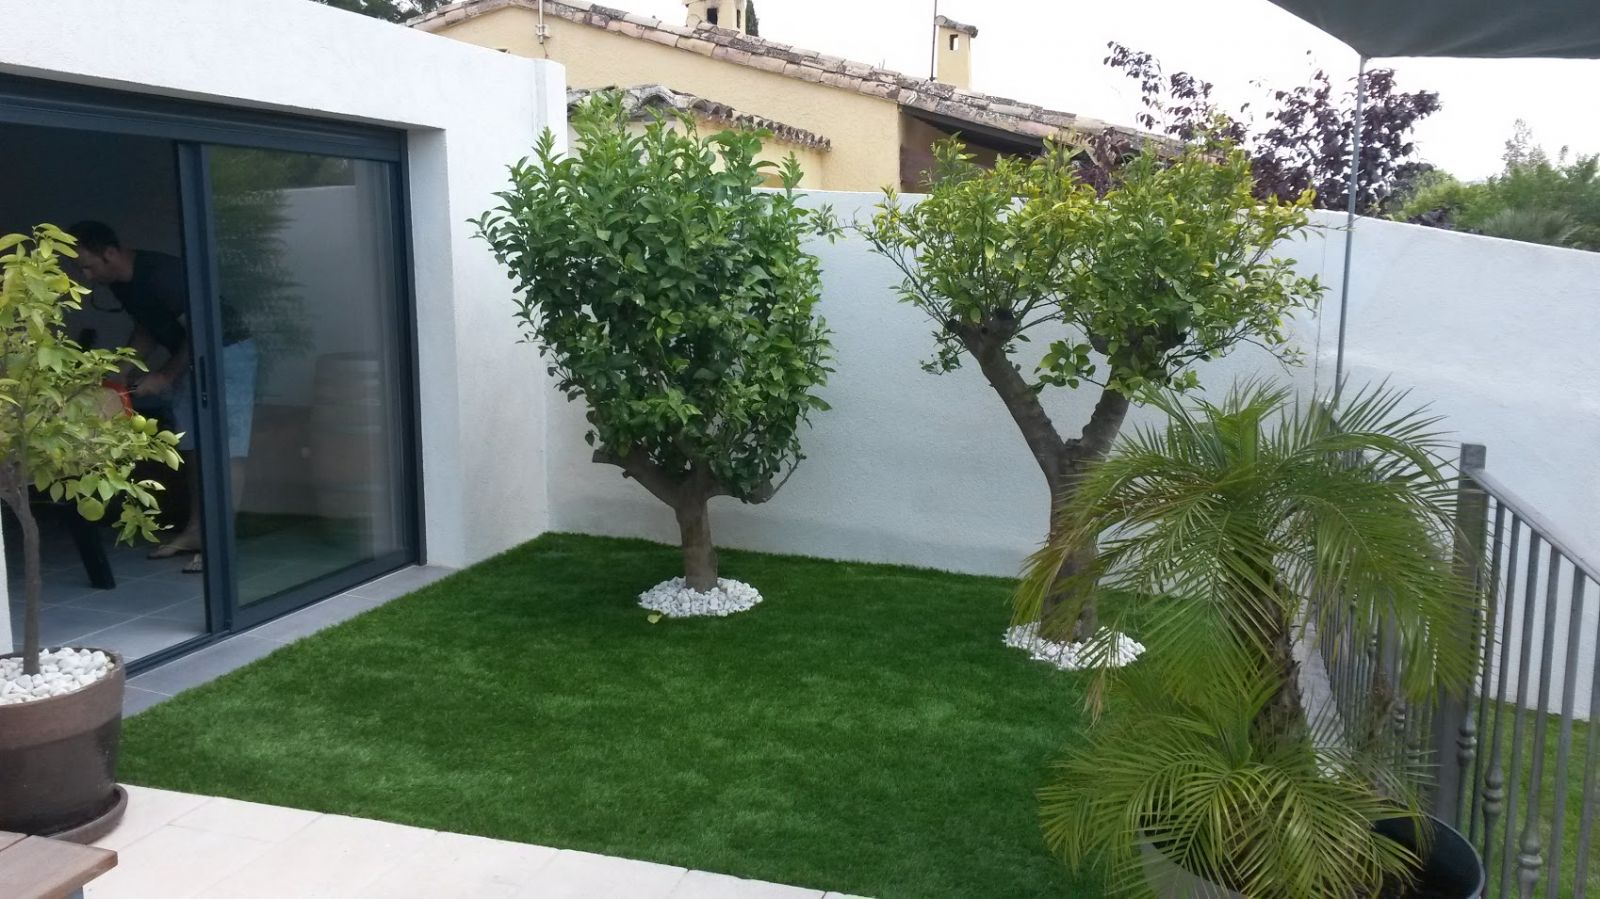 R alisation am nagement jardin avec gazon synth tique for Amenagement de terrain exterieur